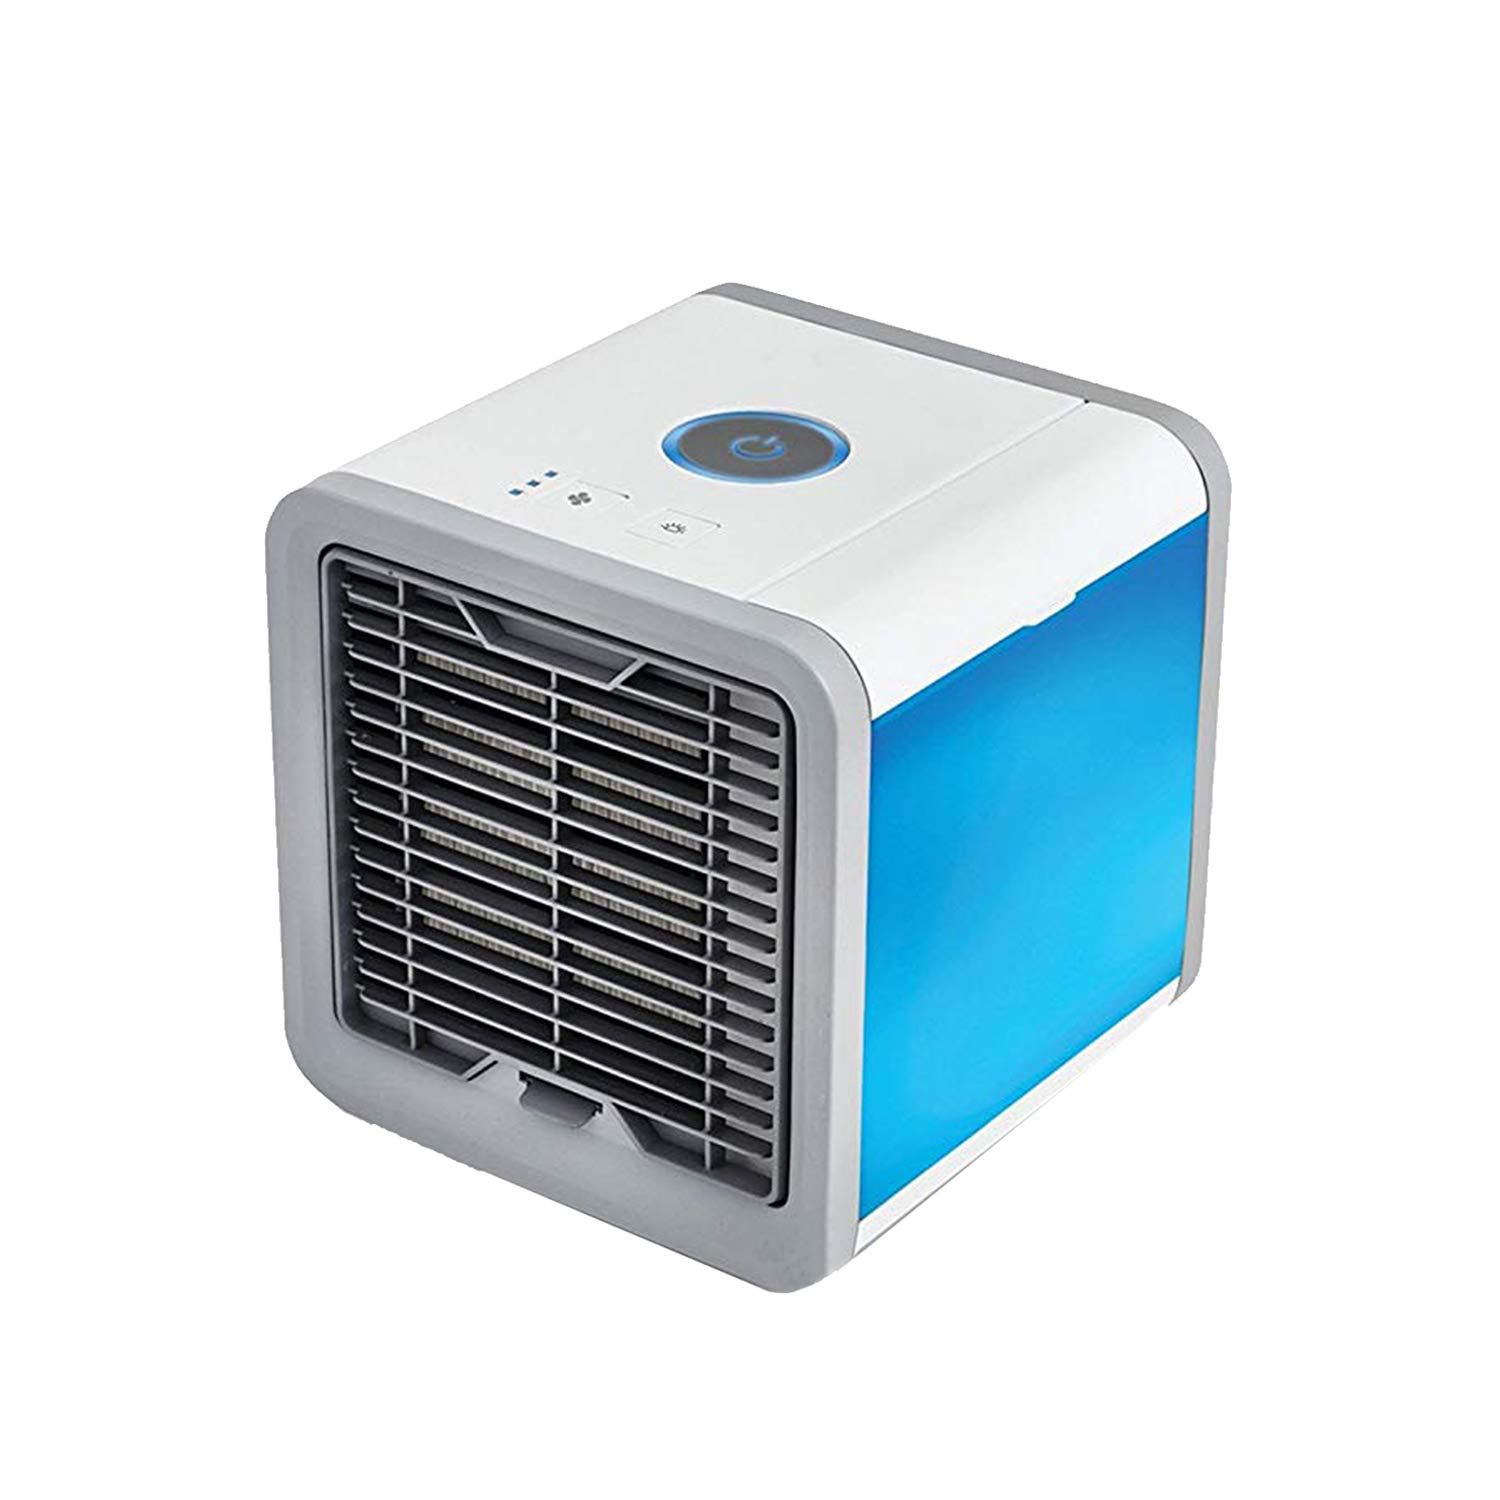 UPONIE Portable Air Conditioner Mini Fan- Personal Mini Air Conditioner, USB Portable Personal Space Air Cooler Humidifier Purifier with 7 Colors LED 3 Fan Speeds, Cooling Fan for Office Home Outdoor